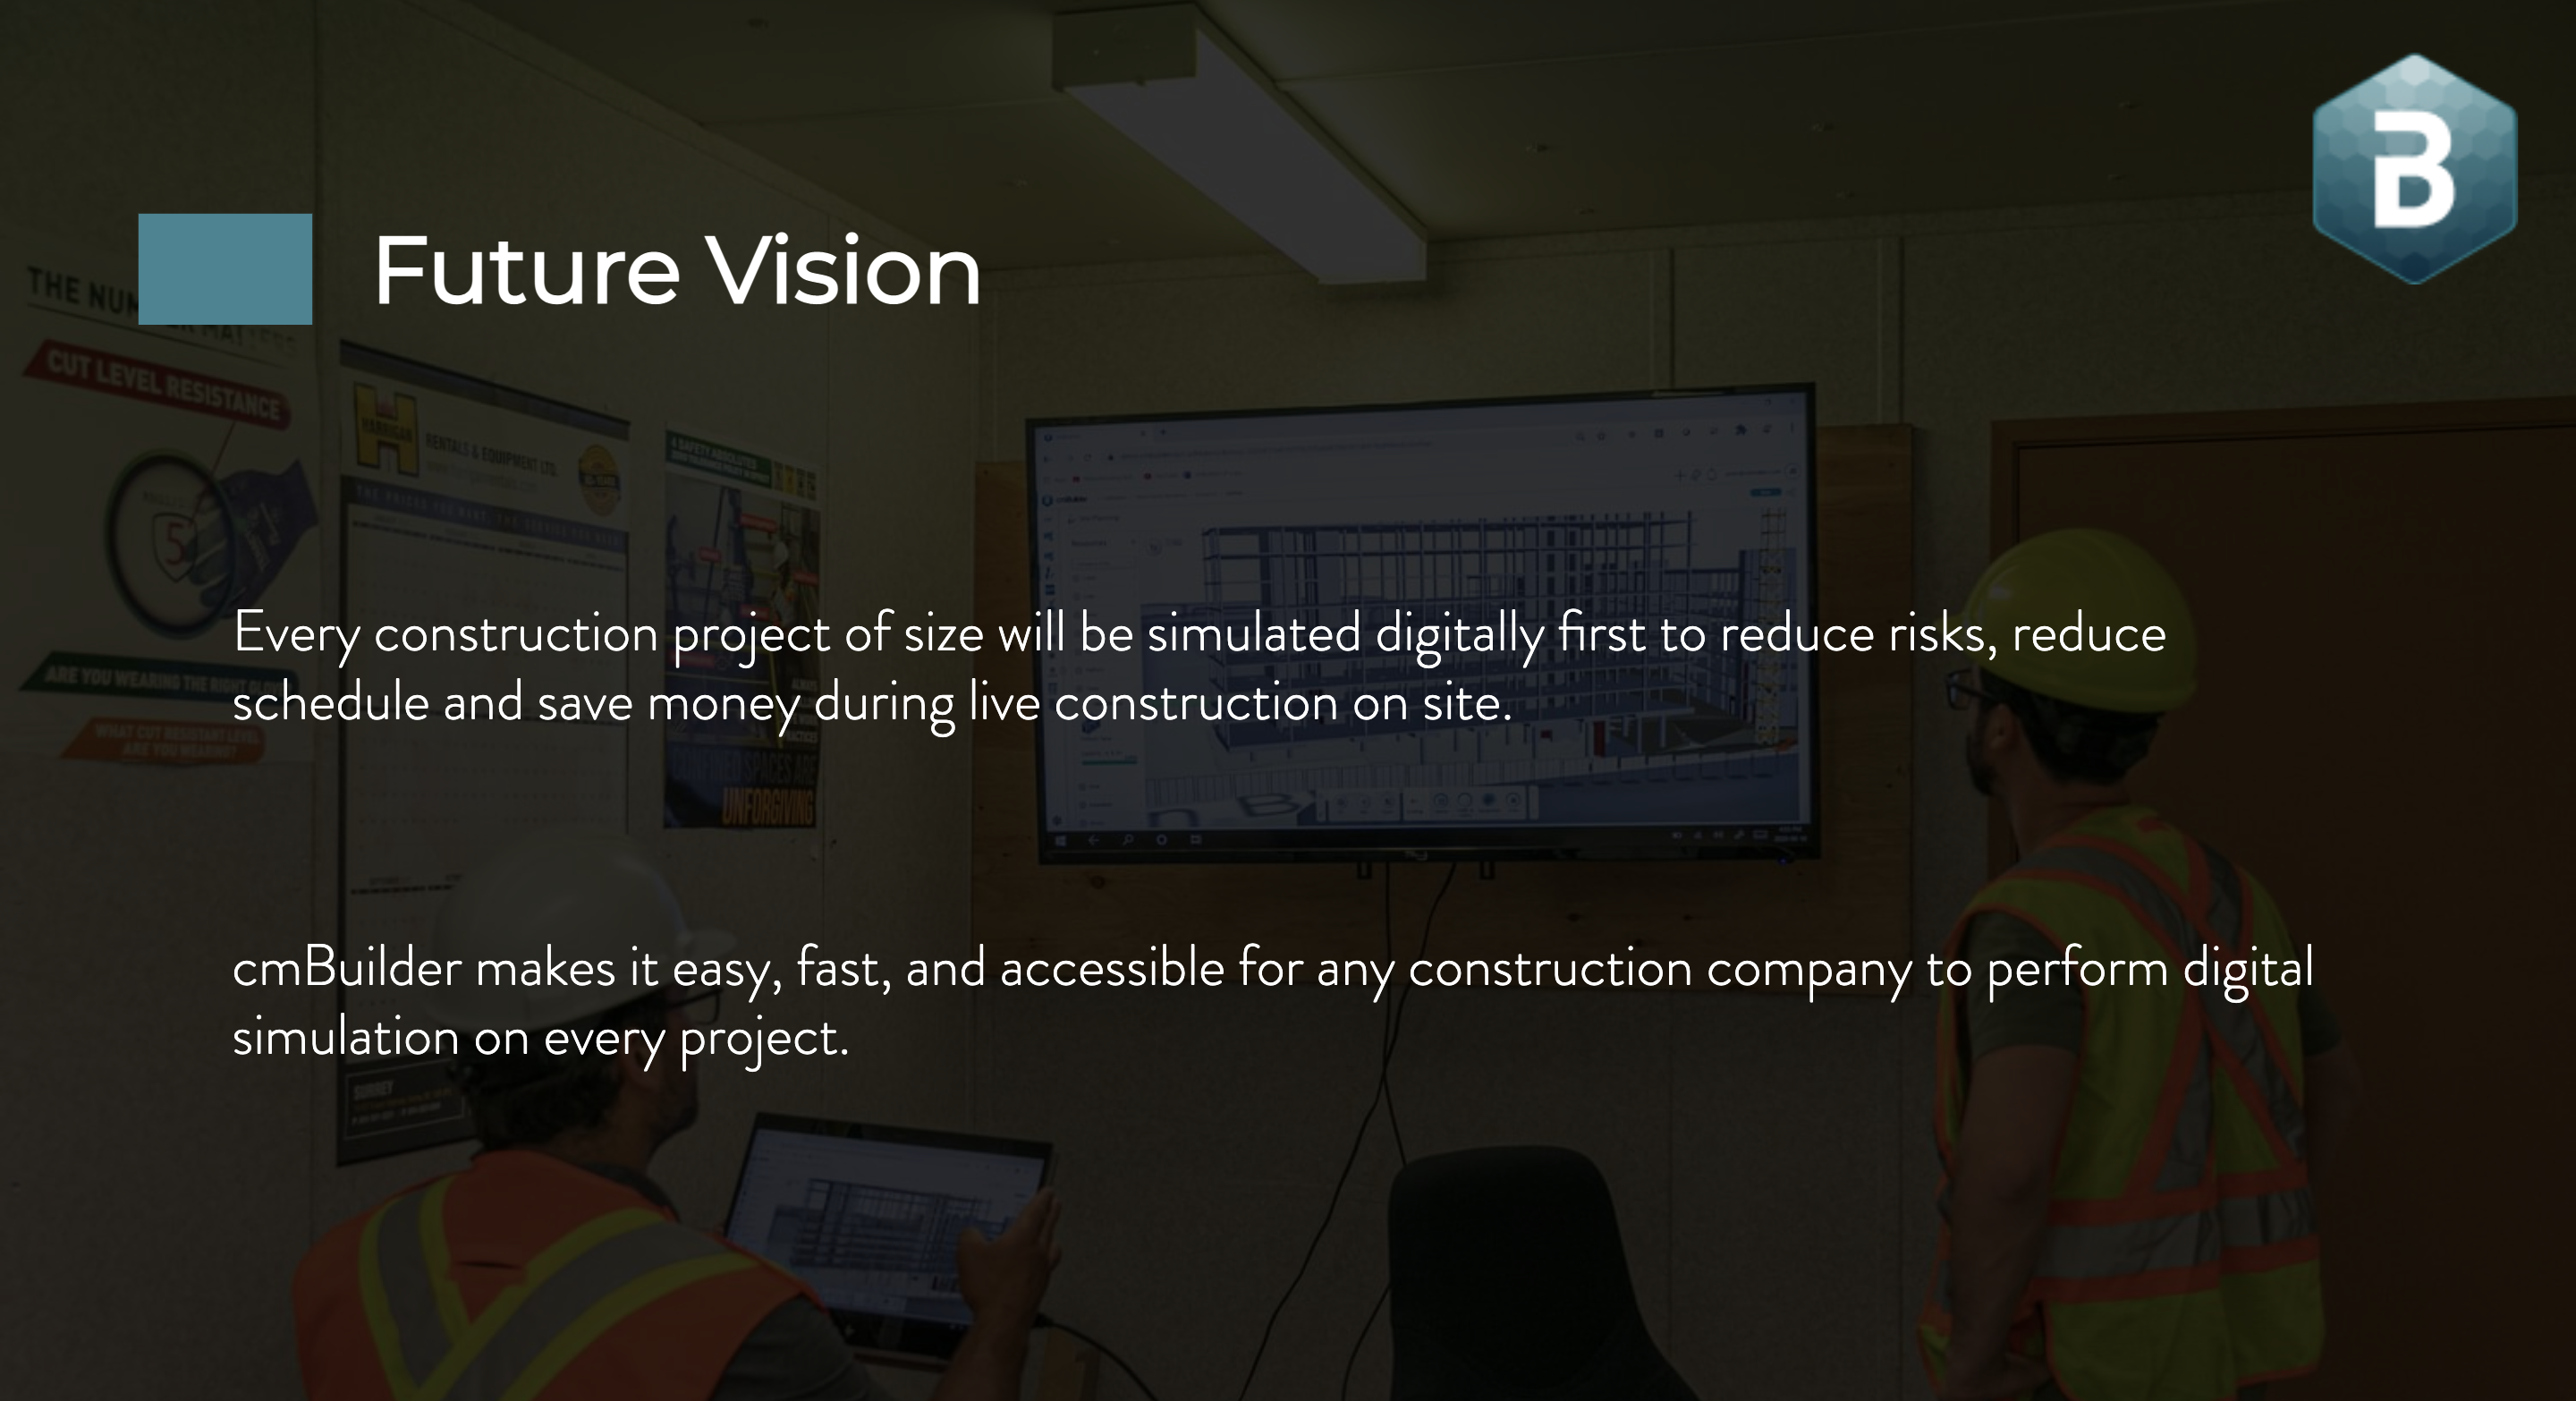 We believe that every construction project of size should be, and will be simulated digitally first to reduce risks, reduce schedule and save money during live construction on site. cmBuilder is breaking down digital barriers and making site simulation accessible for everyone.